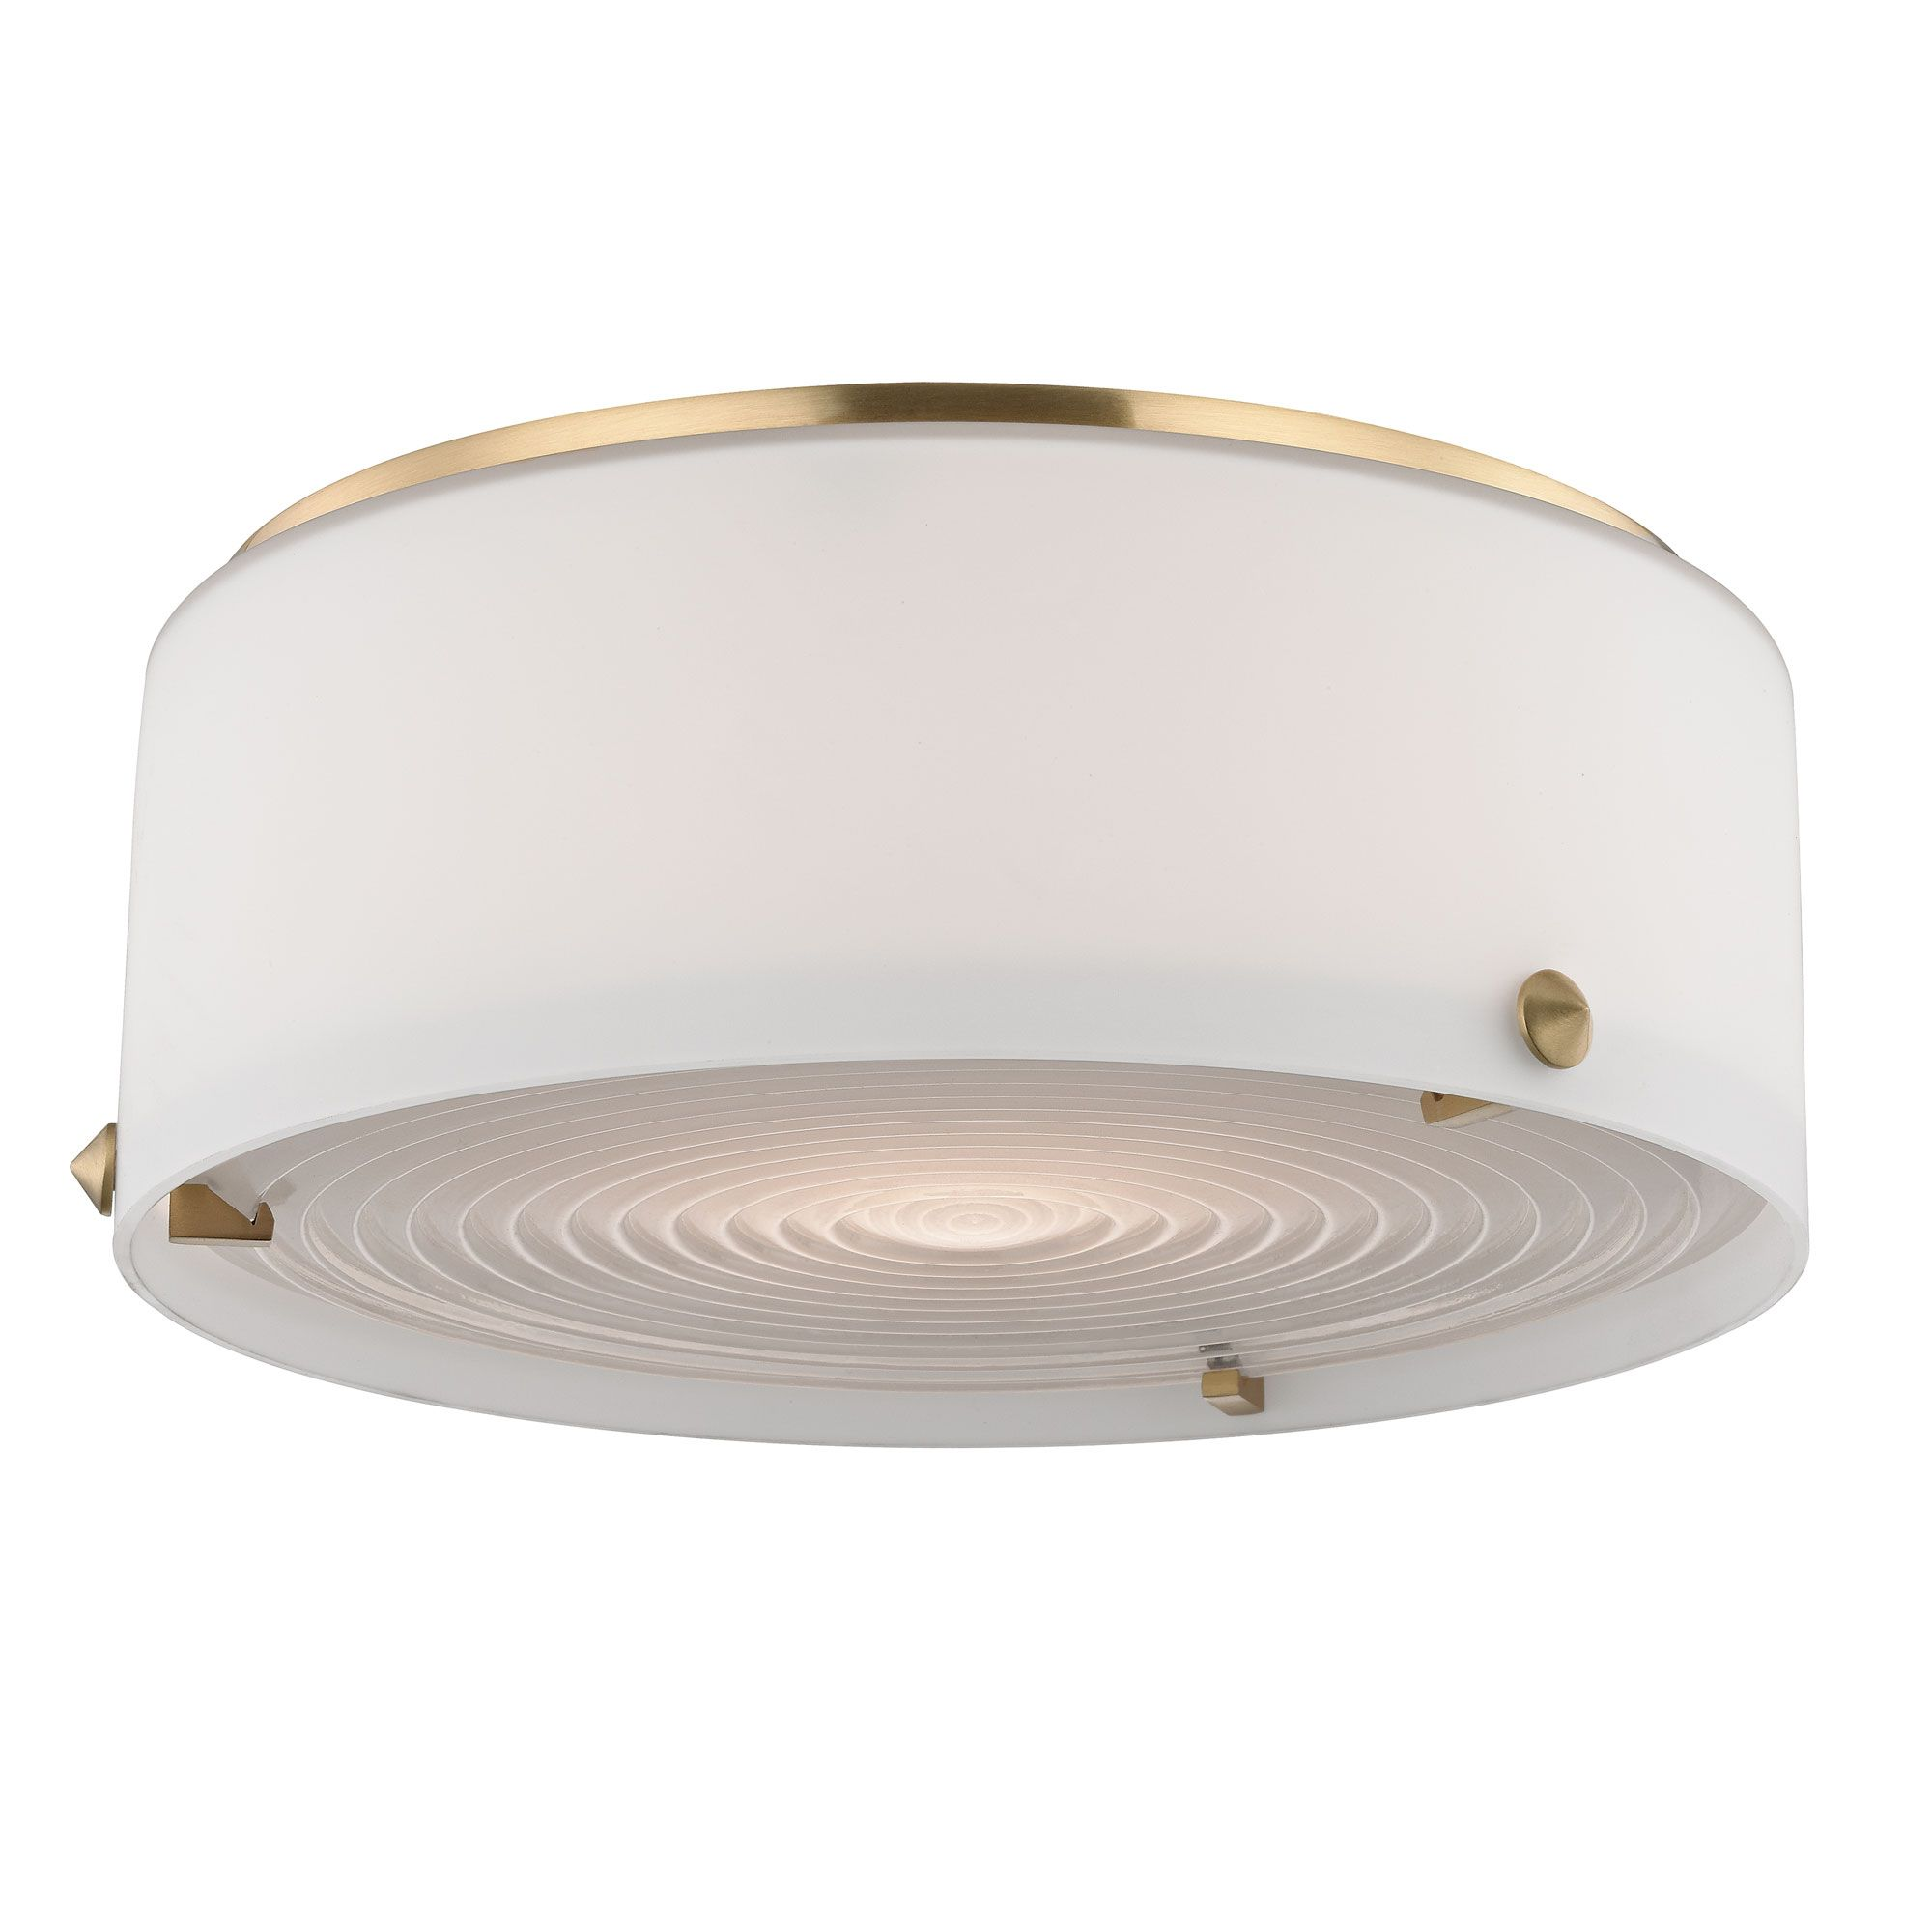 Blackwell Ceiling Light Fixture by Hudson Valley Lighting